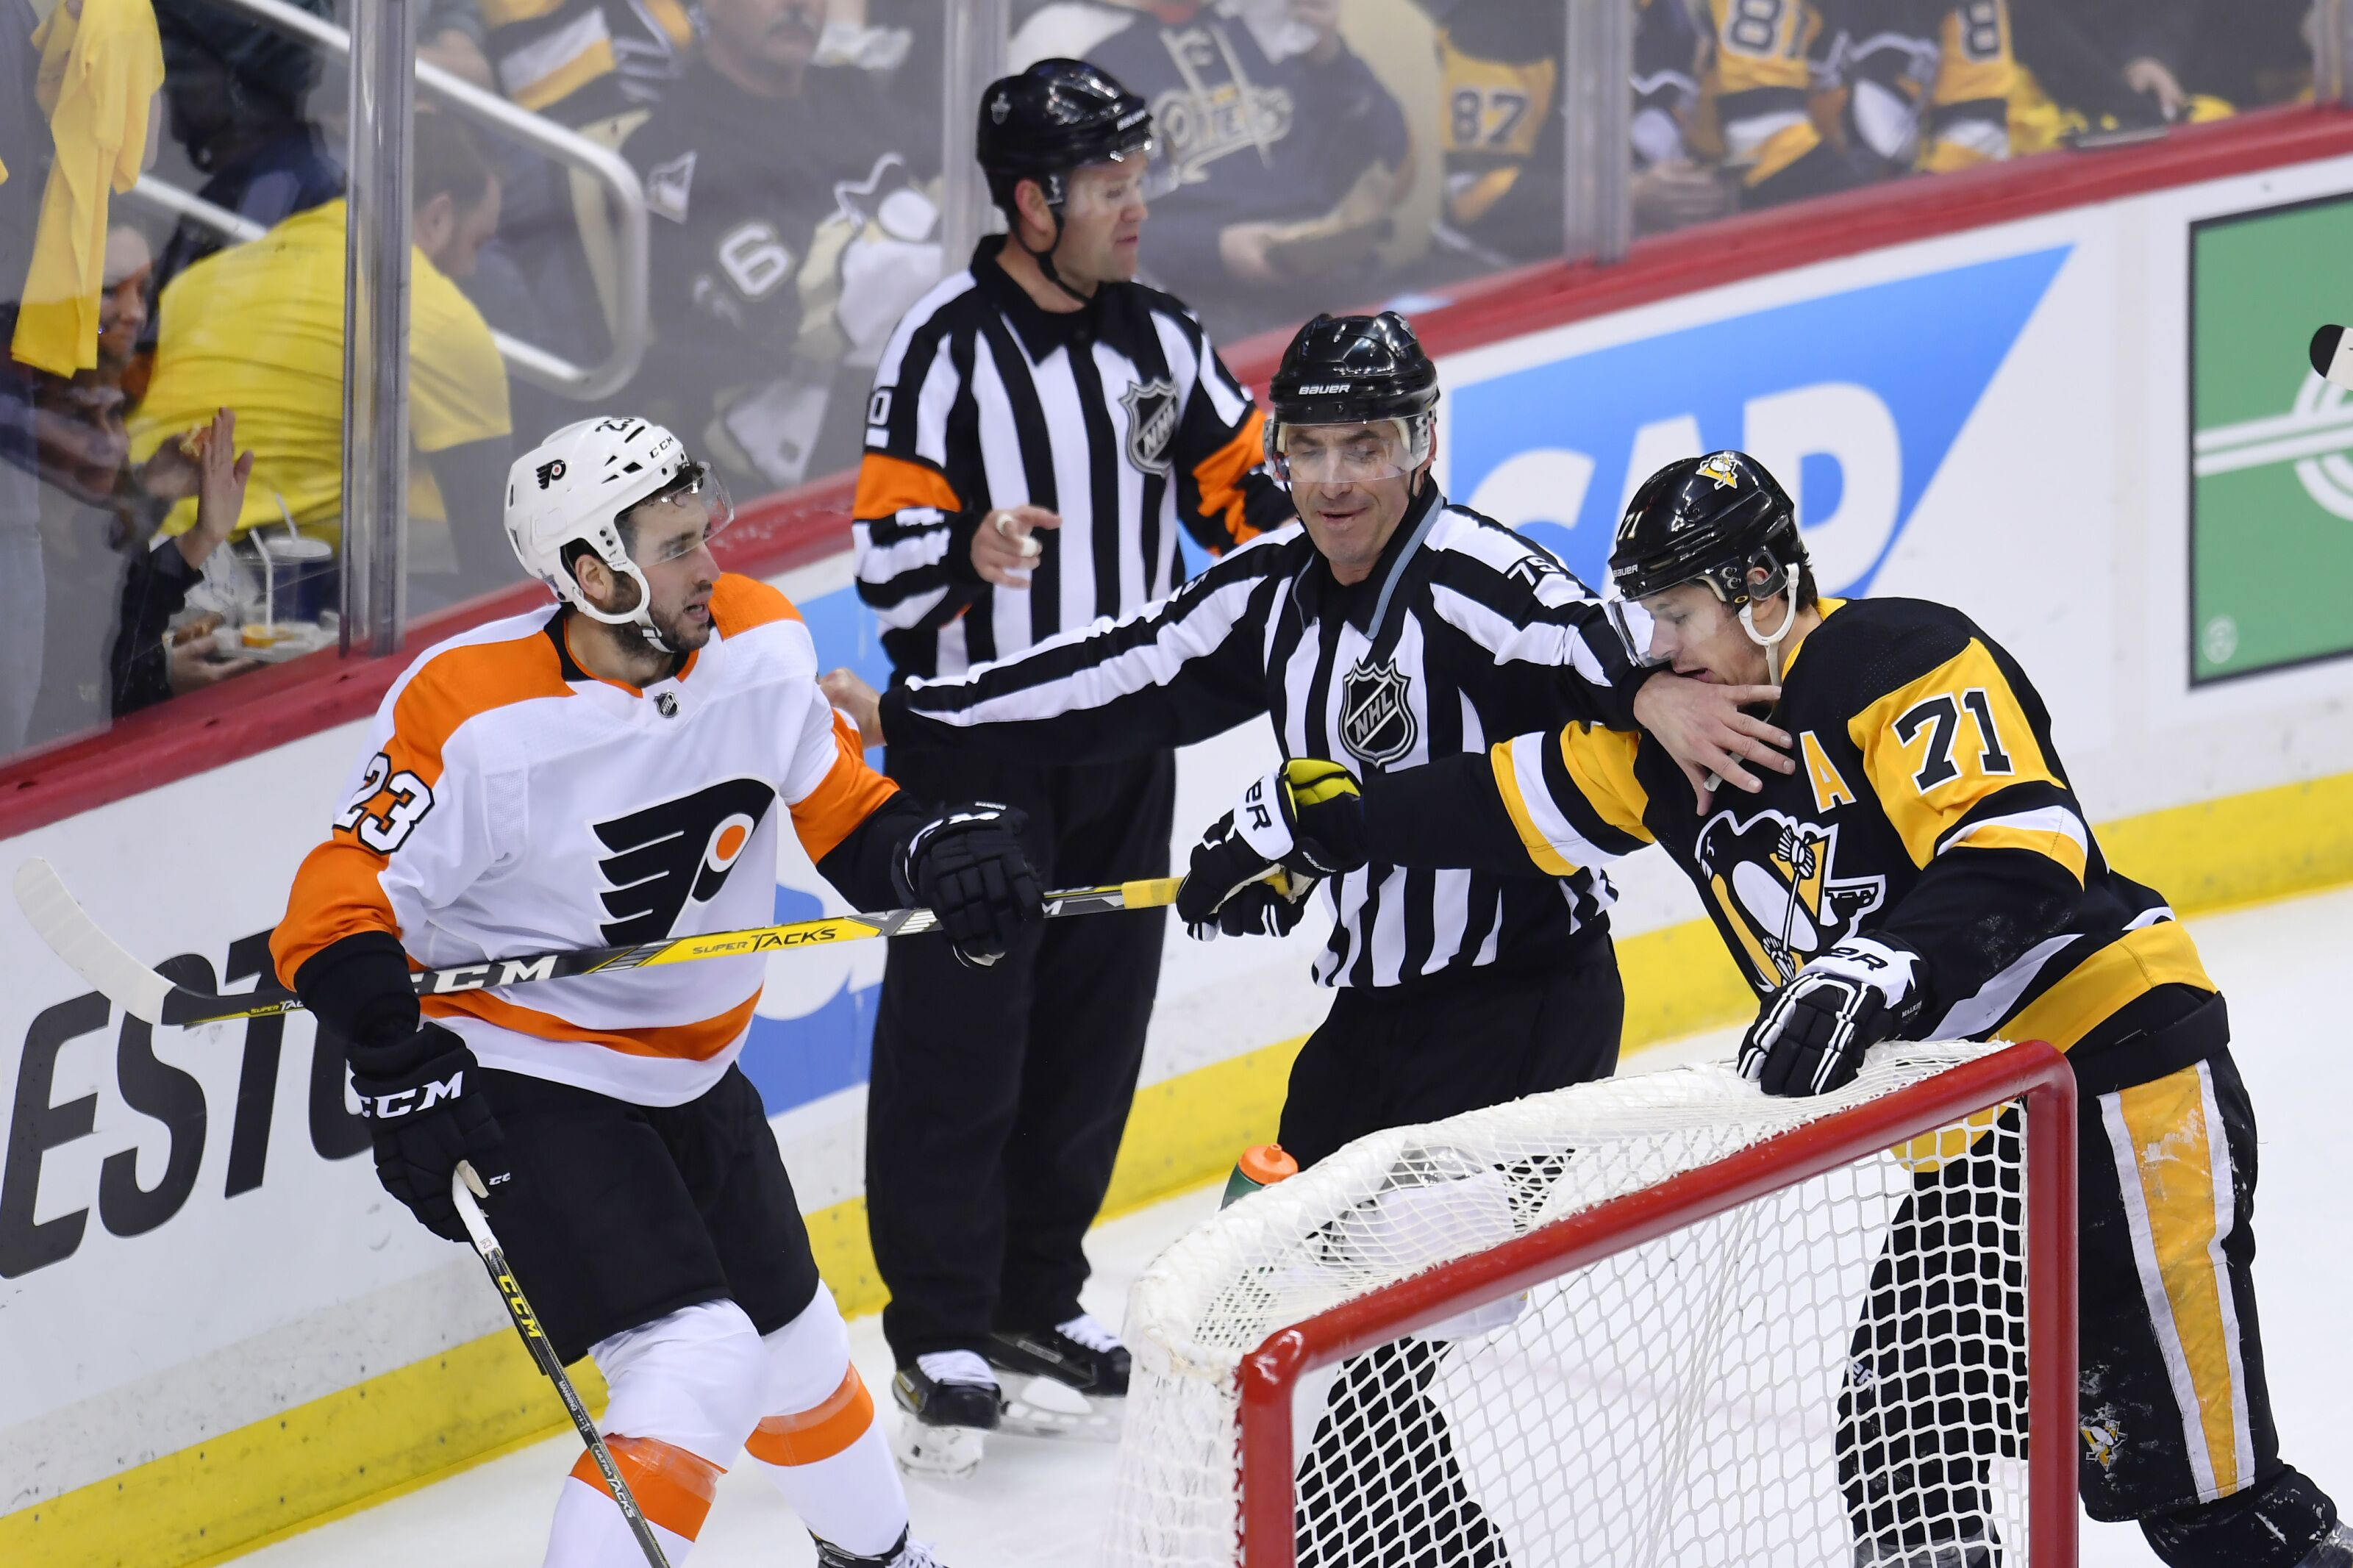 949291730-nhl-apr-20-stanley-cup-playoffs-first-round-game-5-flyers-at-penguins.jpg